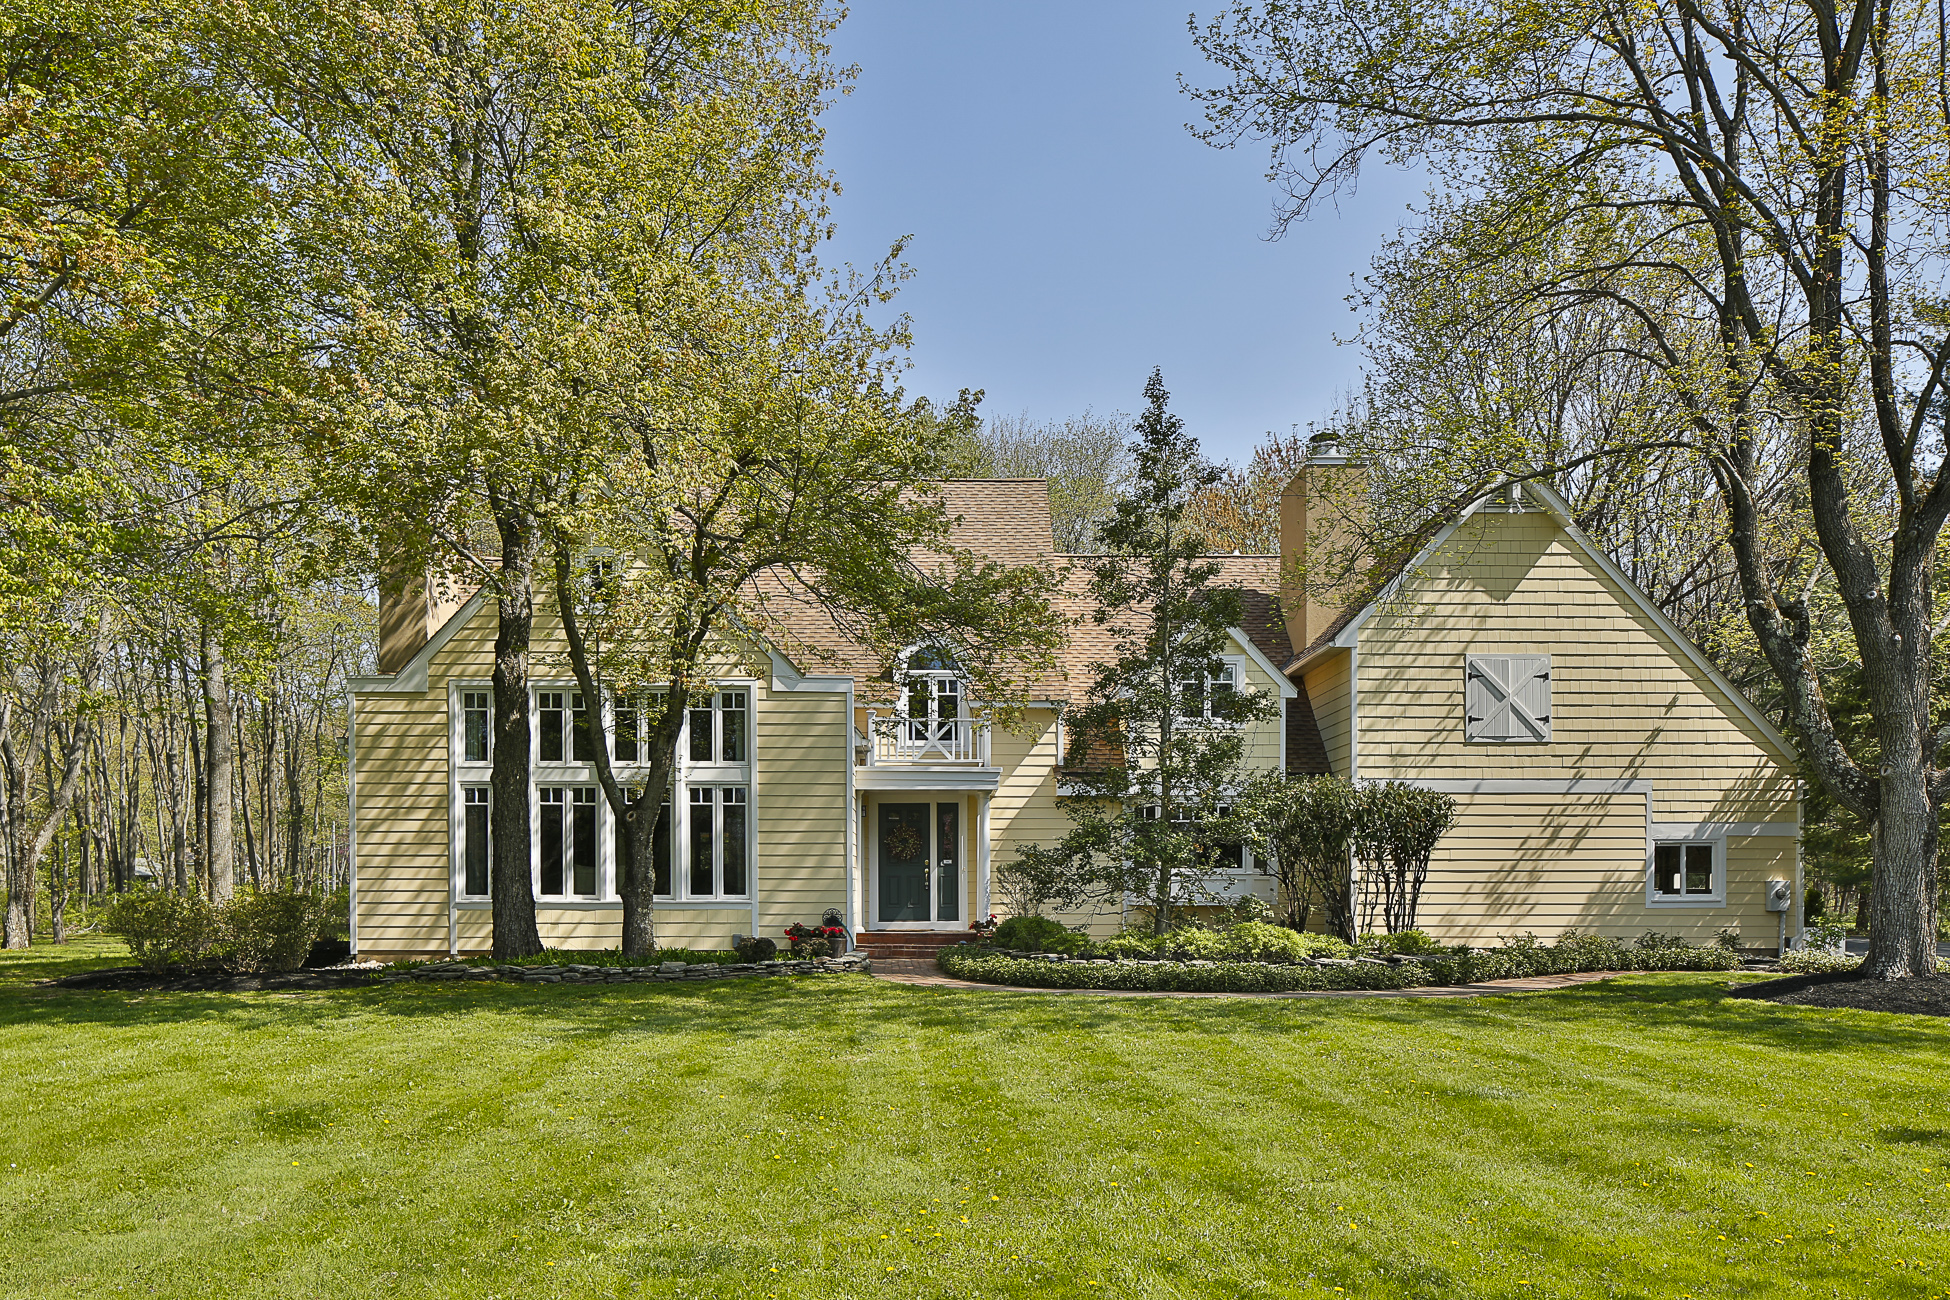 Single Family Home for Sale at Light Filled, Architecturally Enhanced 159 Moores Mill Mount Rose Road Hopewell, New Jersey 08525 United States